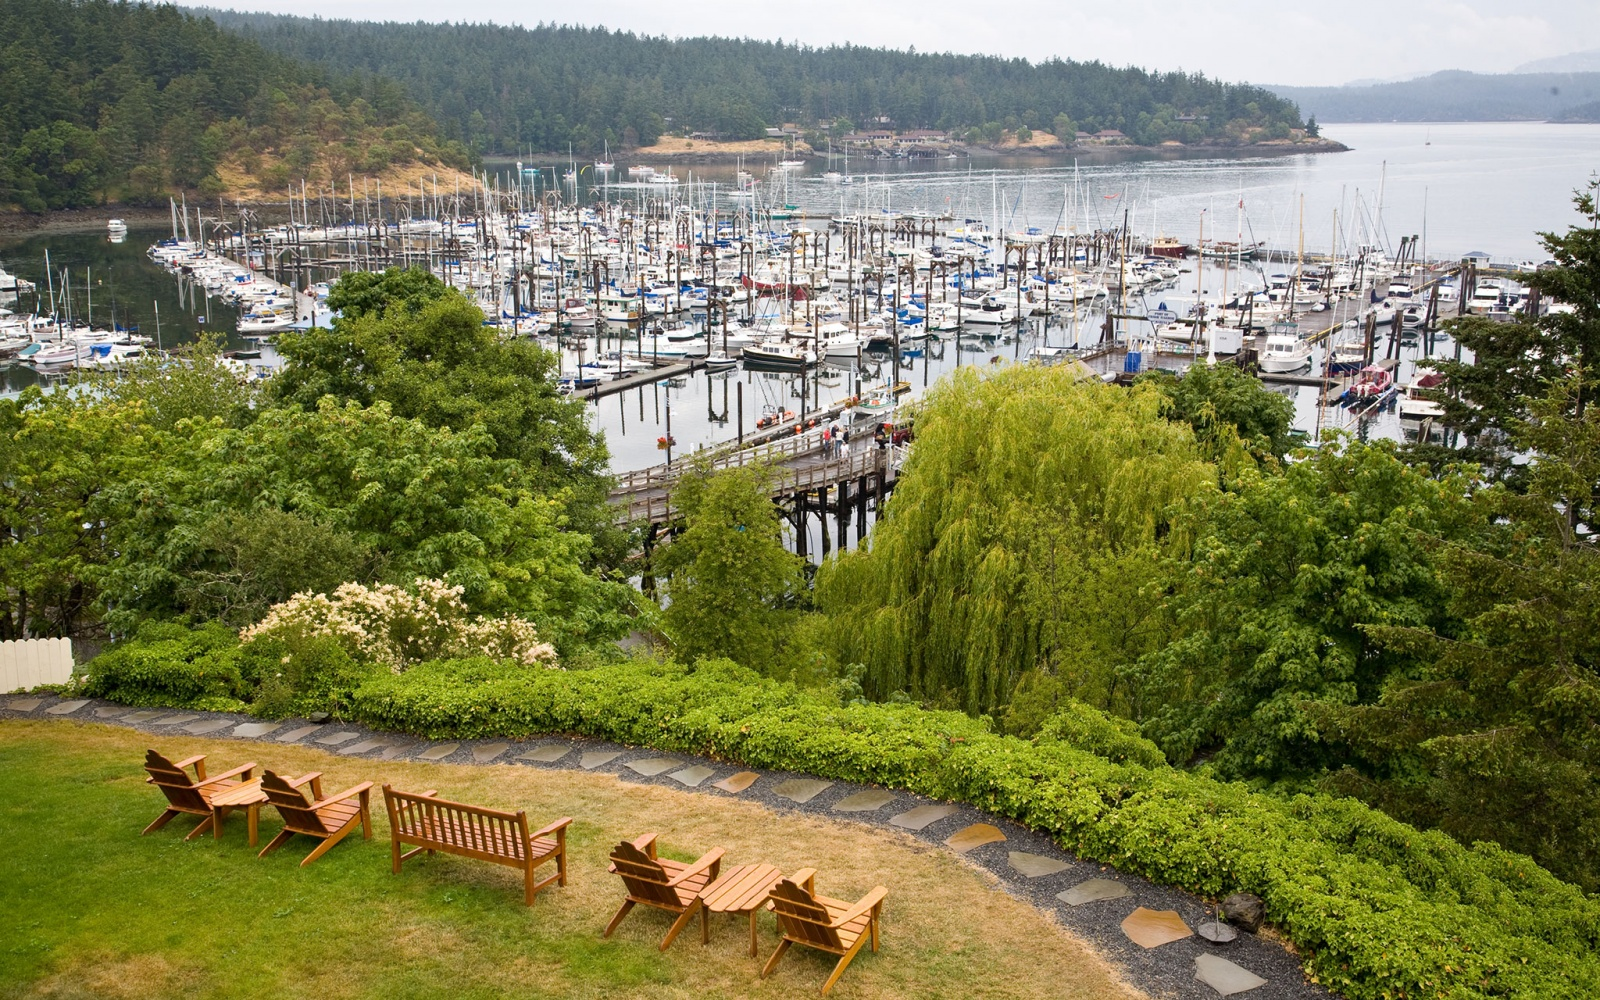 Friday Harbor, San Juan Island, Washington